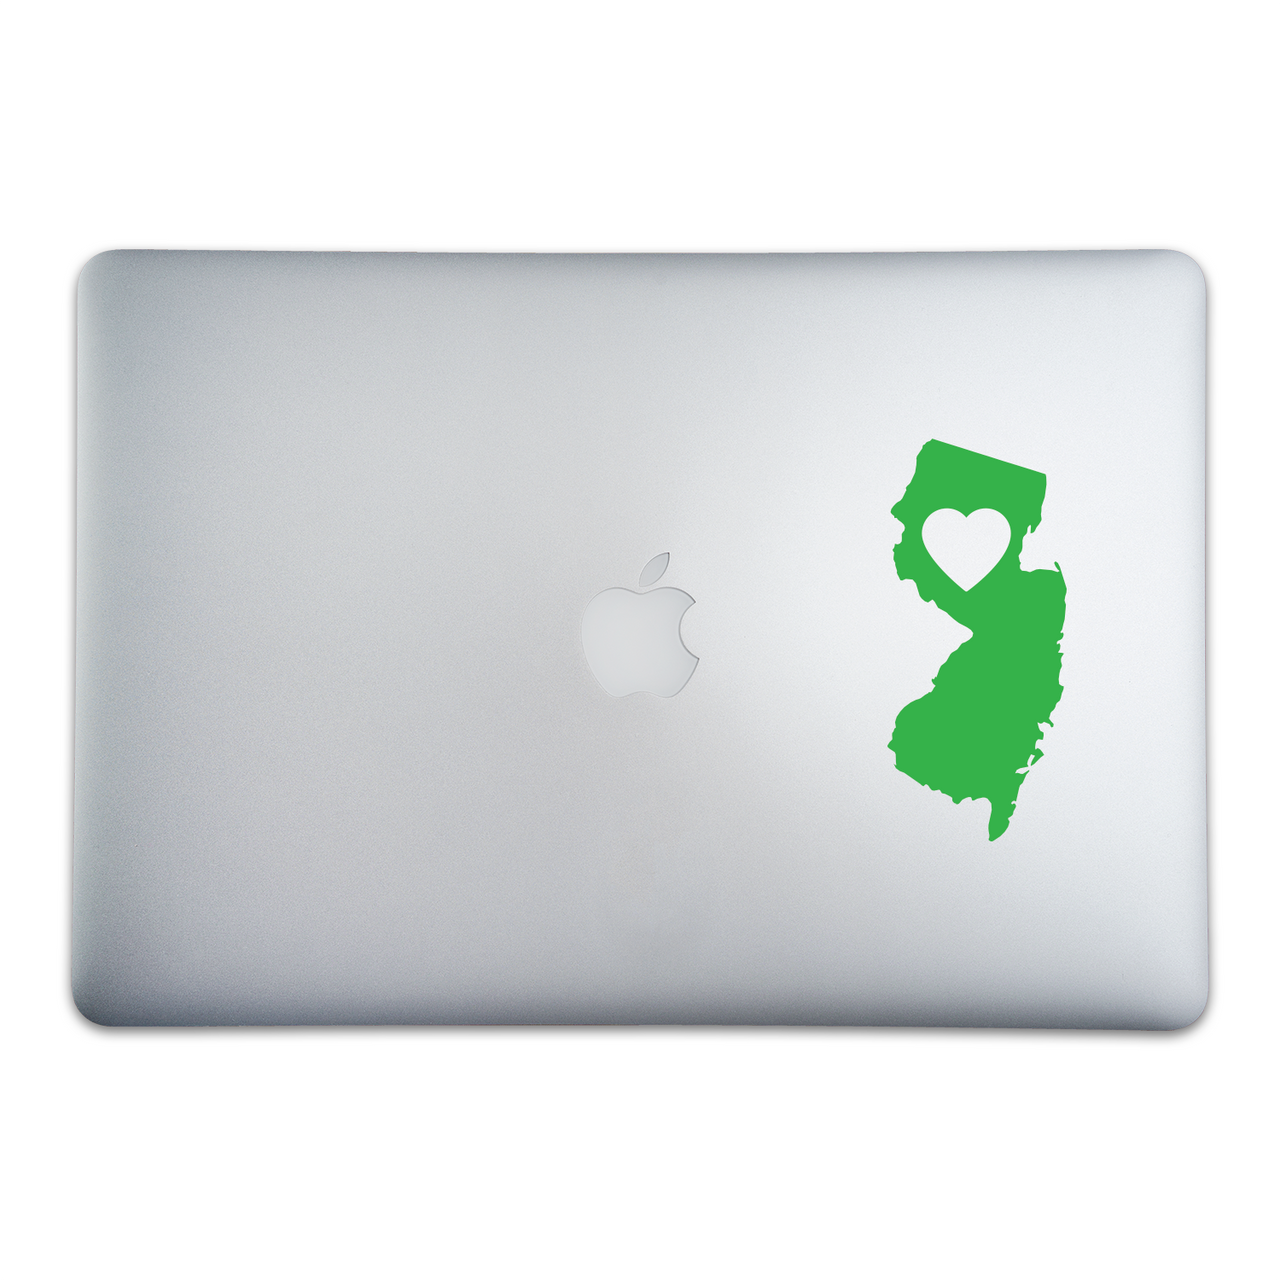 New Jersey Love Sticker On A 15-Inch Macbook Pro